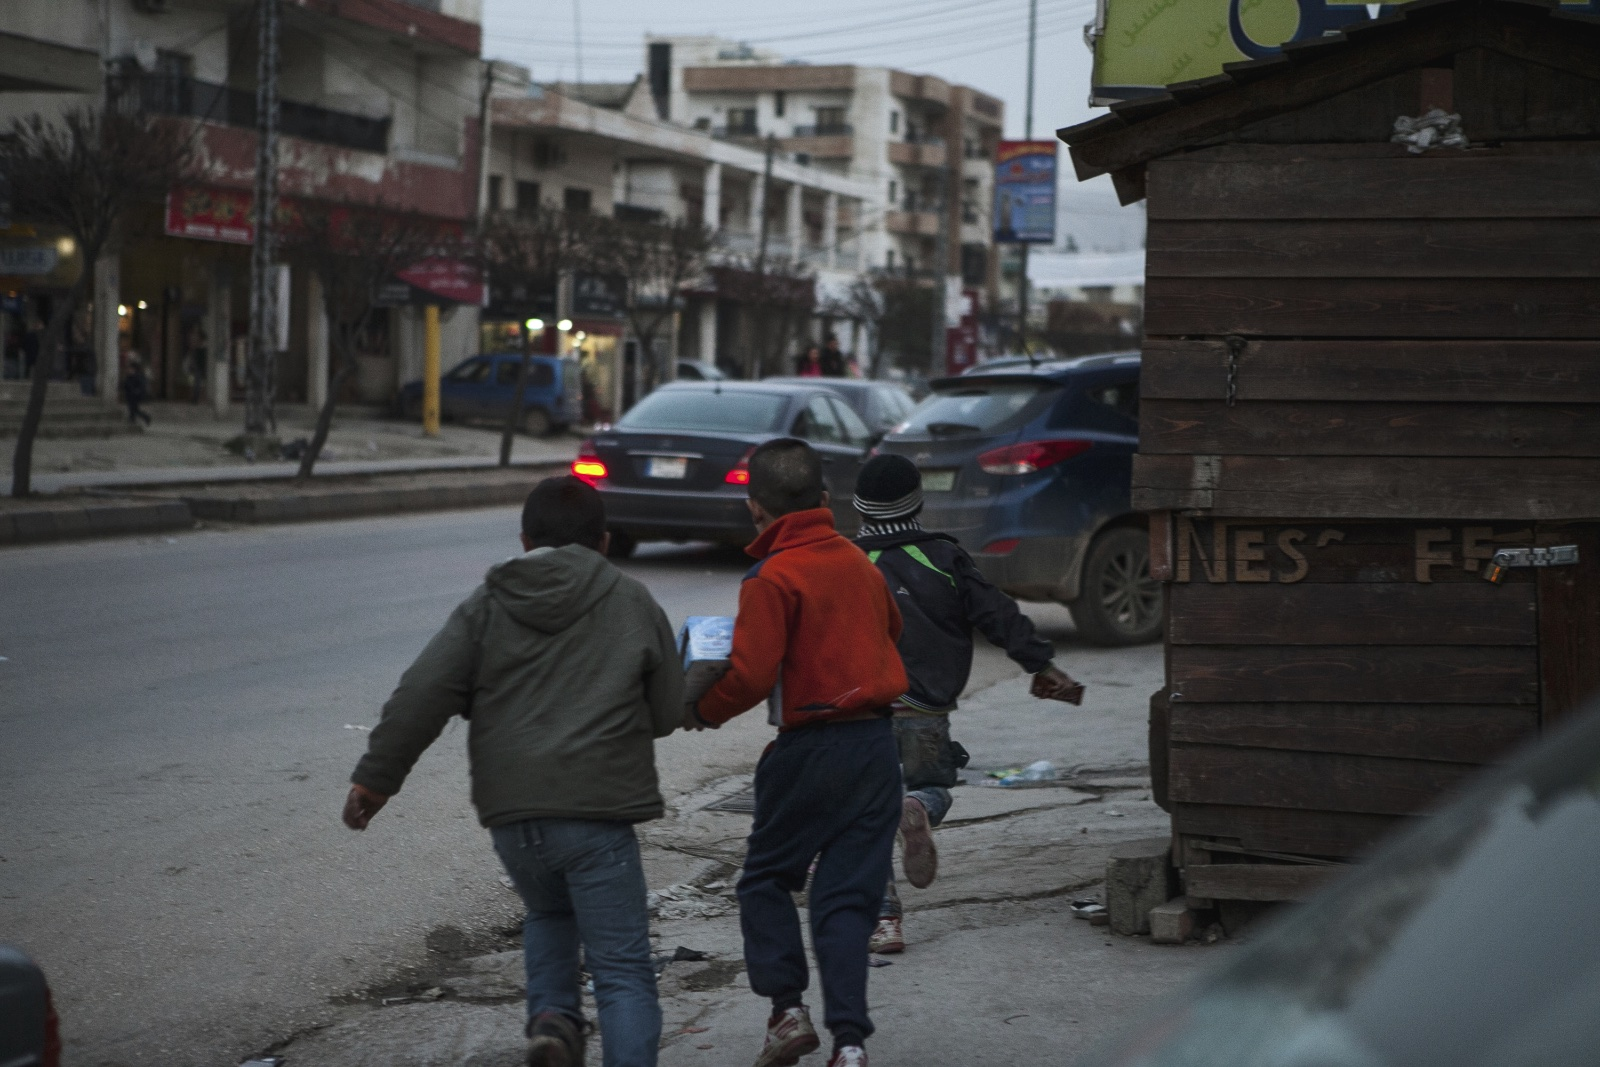 Syrian refugee children run away from a Lebanese store owner who chased them from his property in the Bekaa Valley. (Christopher Lee/GroundTruth)